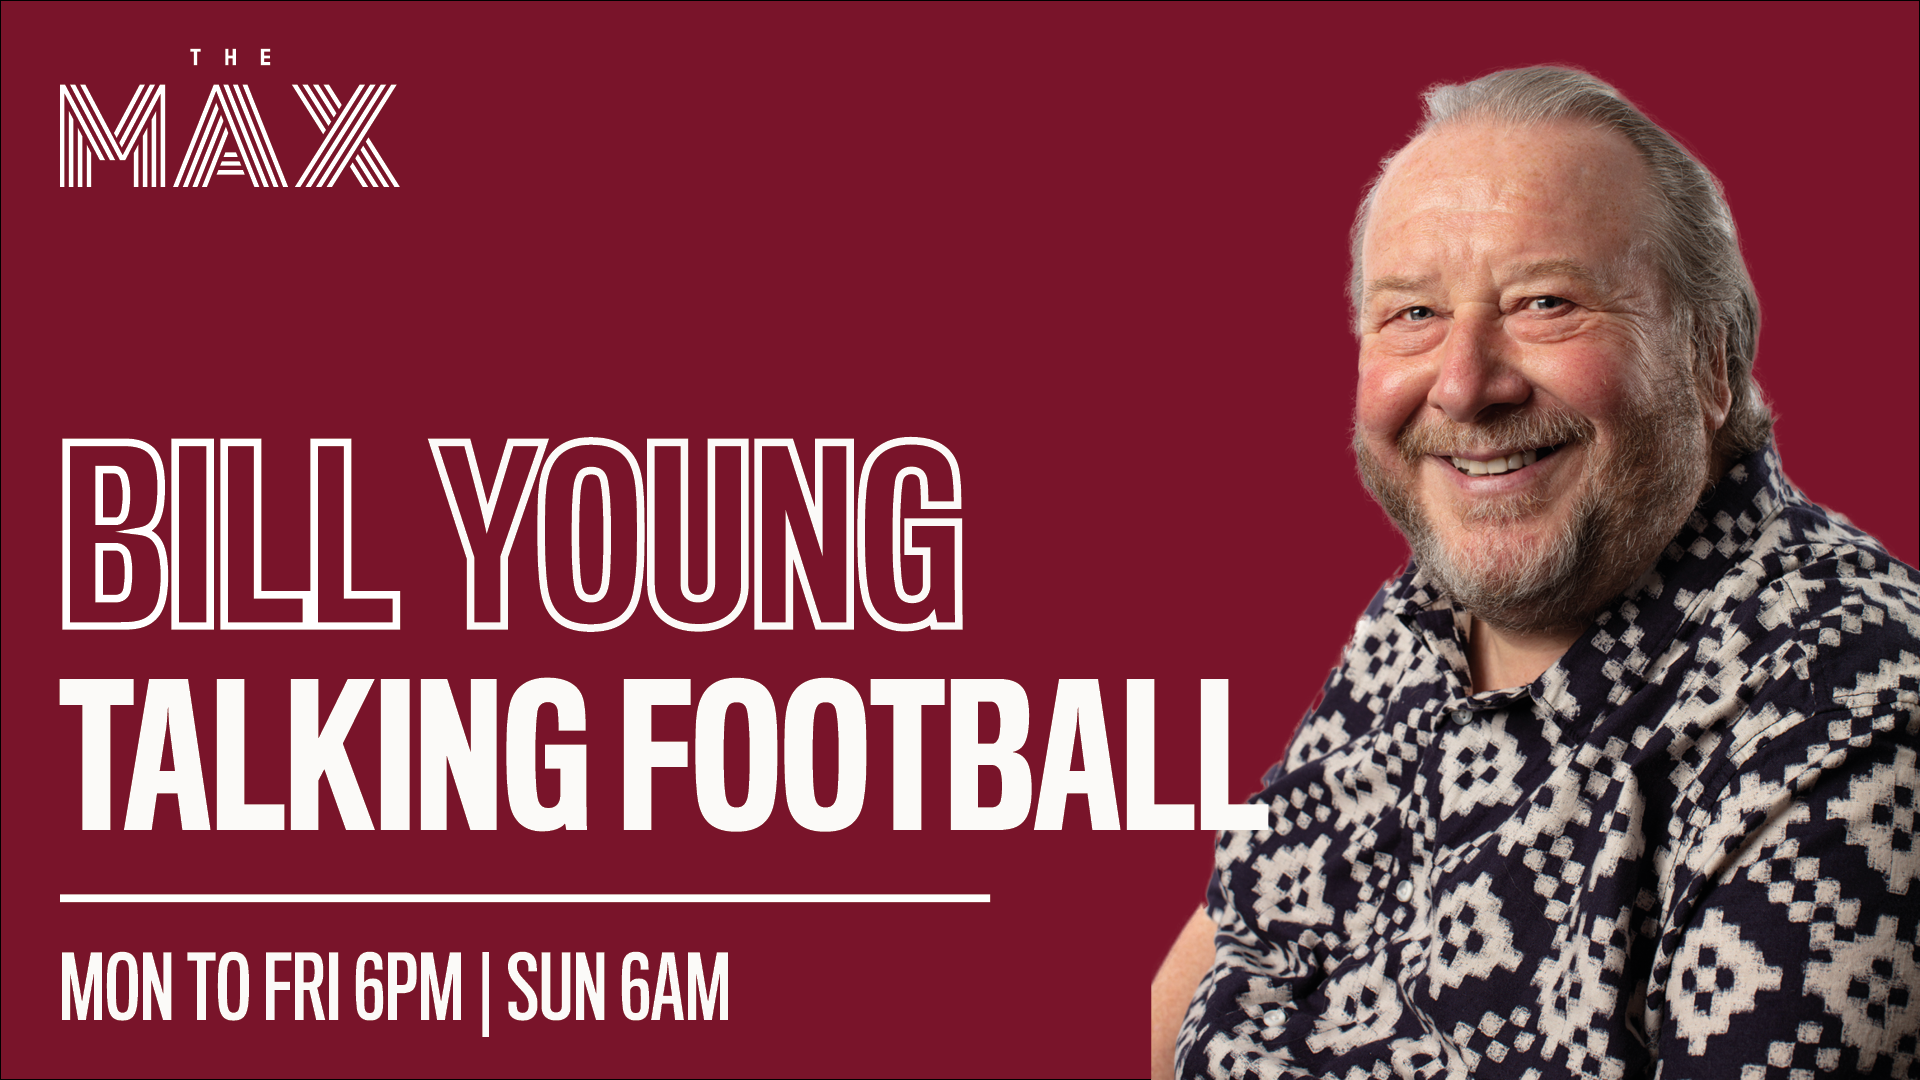 Talking Football with Bill Young - Friday 26th March